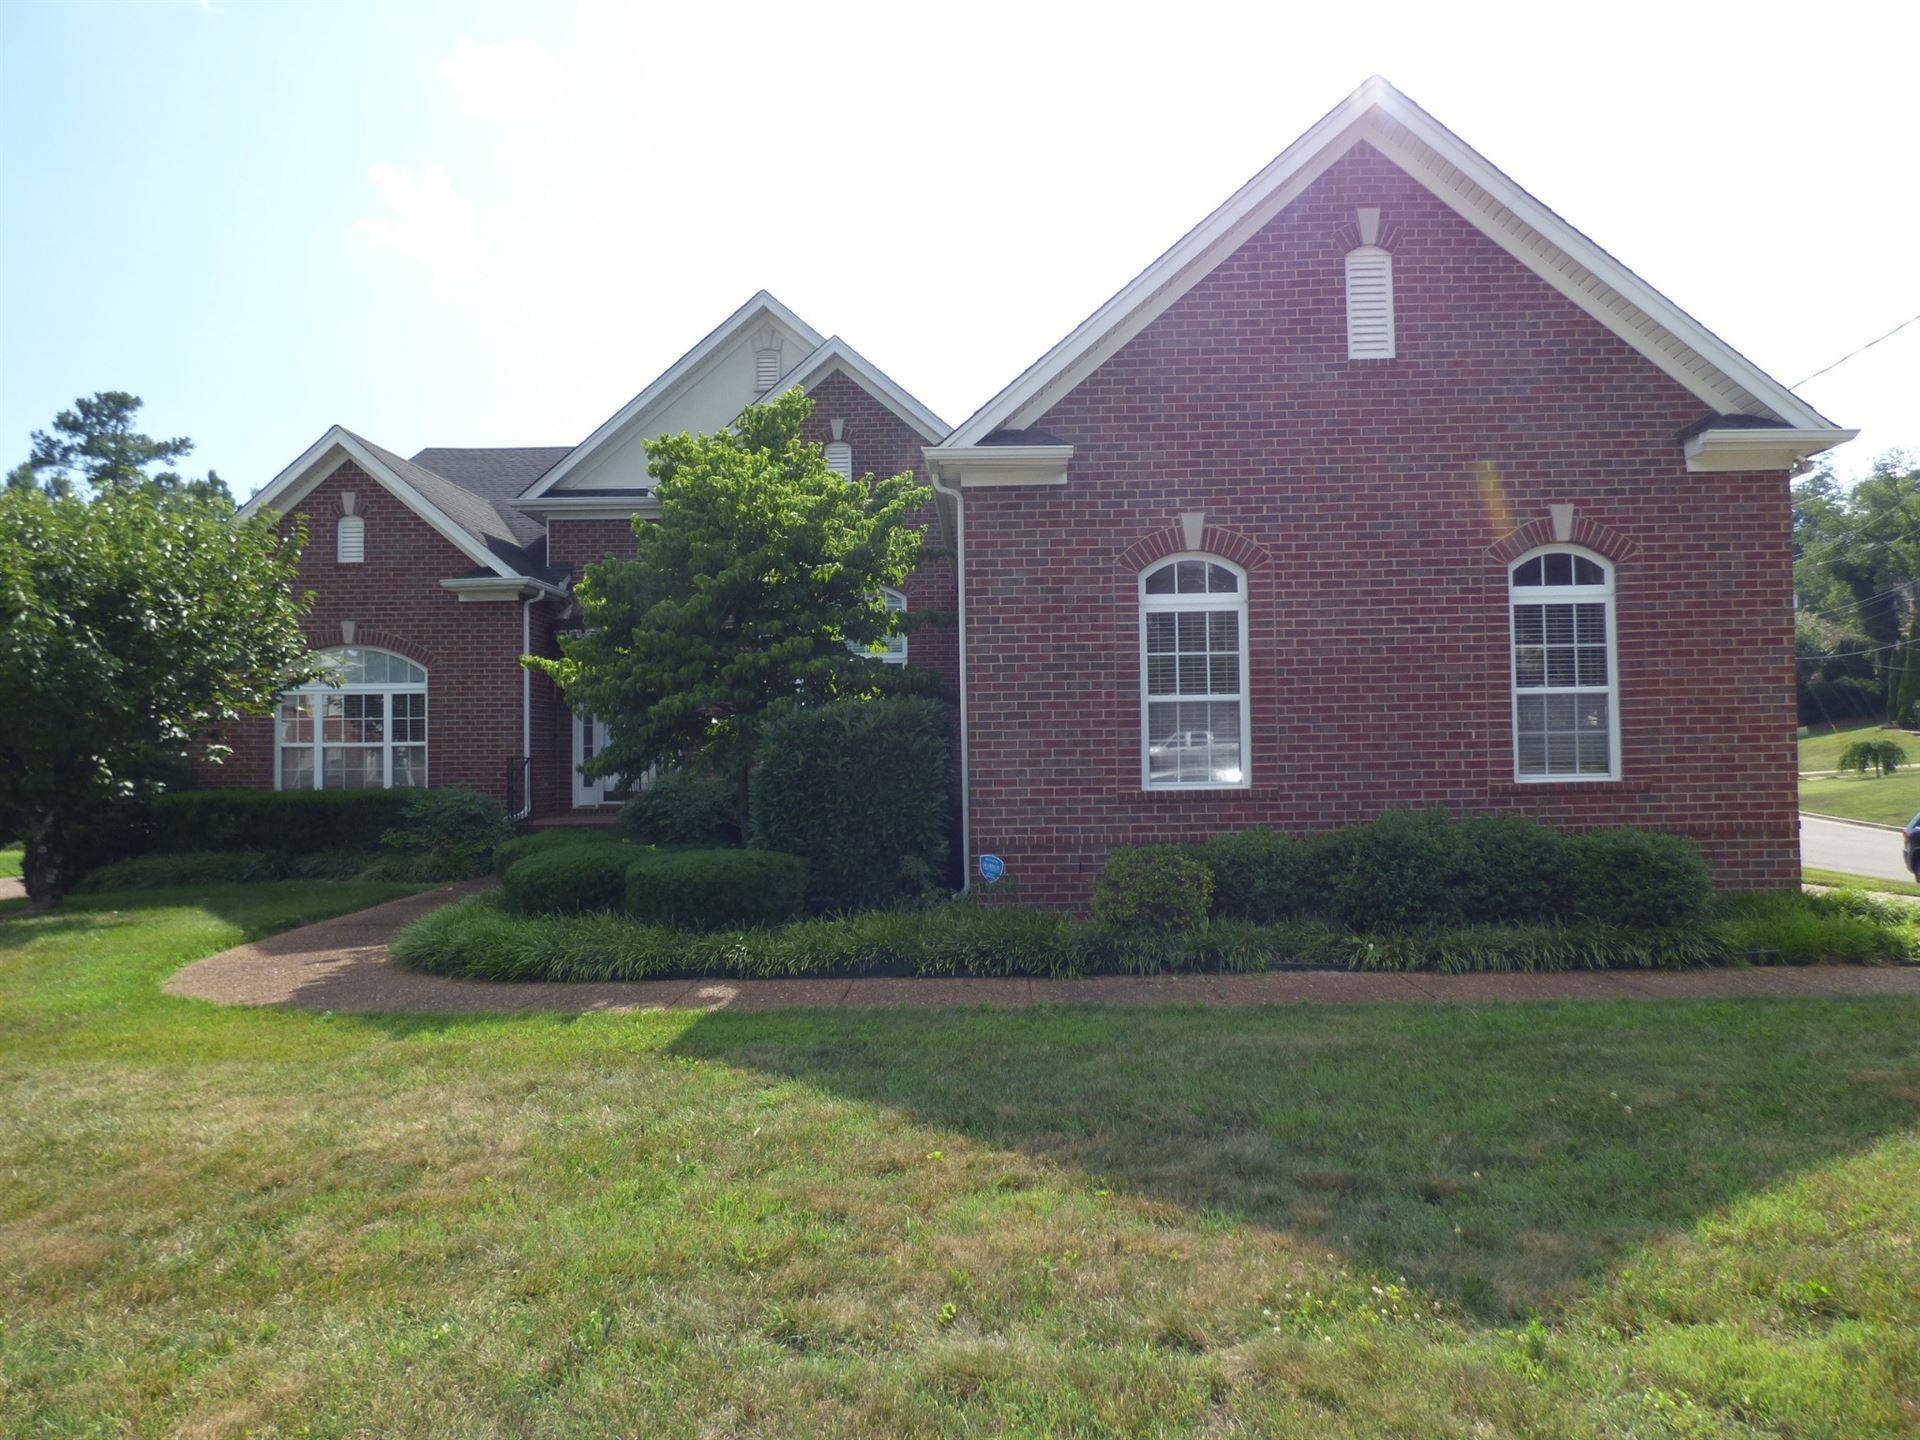 Photo of 7828 Indian Springs Dr, Nashville, TN 37221 (MLS # 2168369)